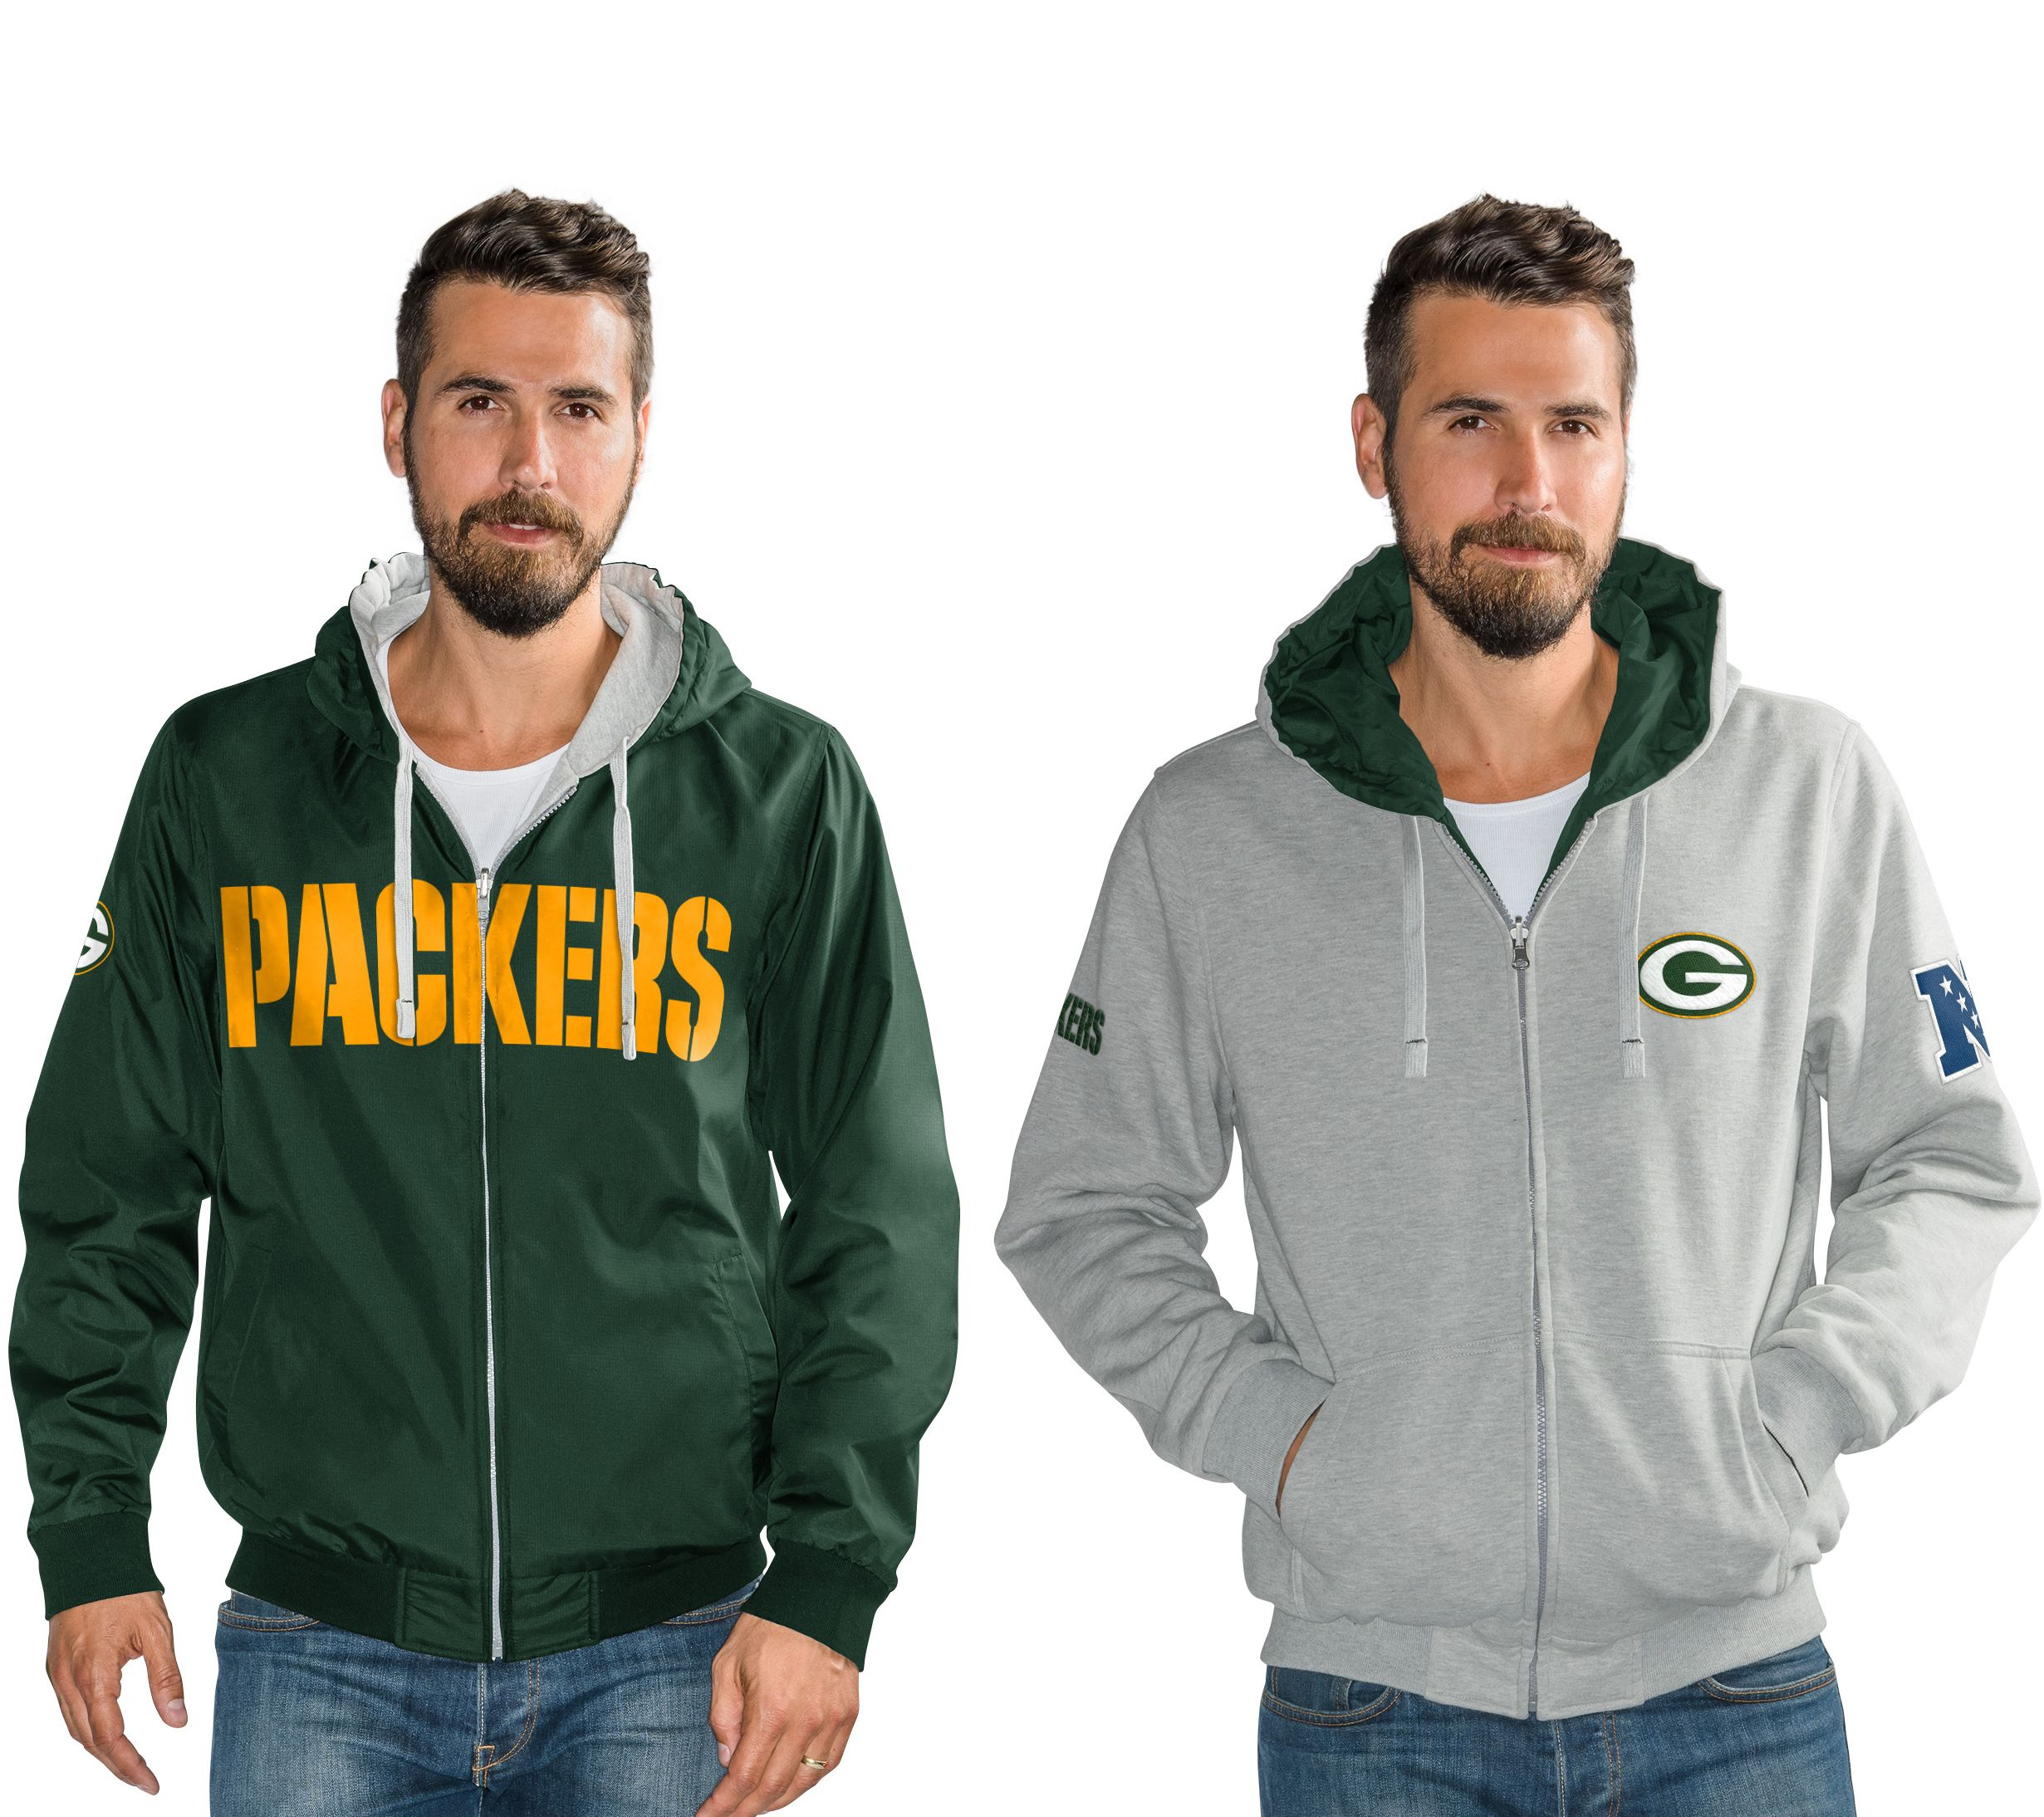 1d61ac4ff NFL Reversible Hoodie and Jacket in Team Colors - Page 1 — QVC.com